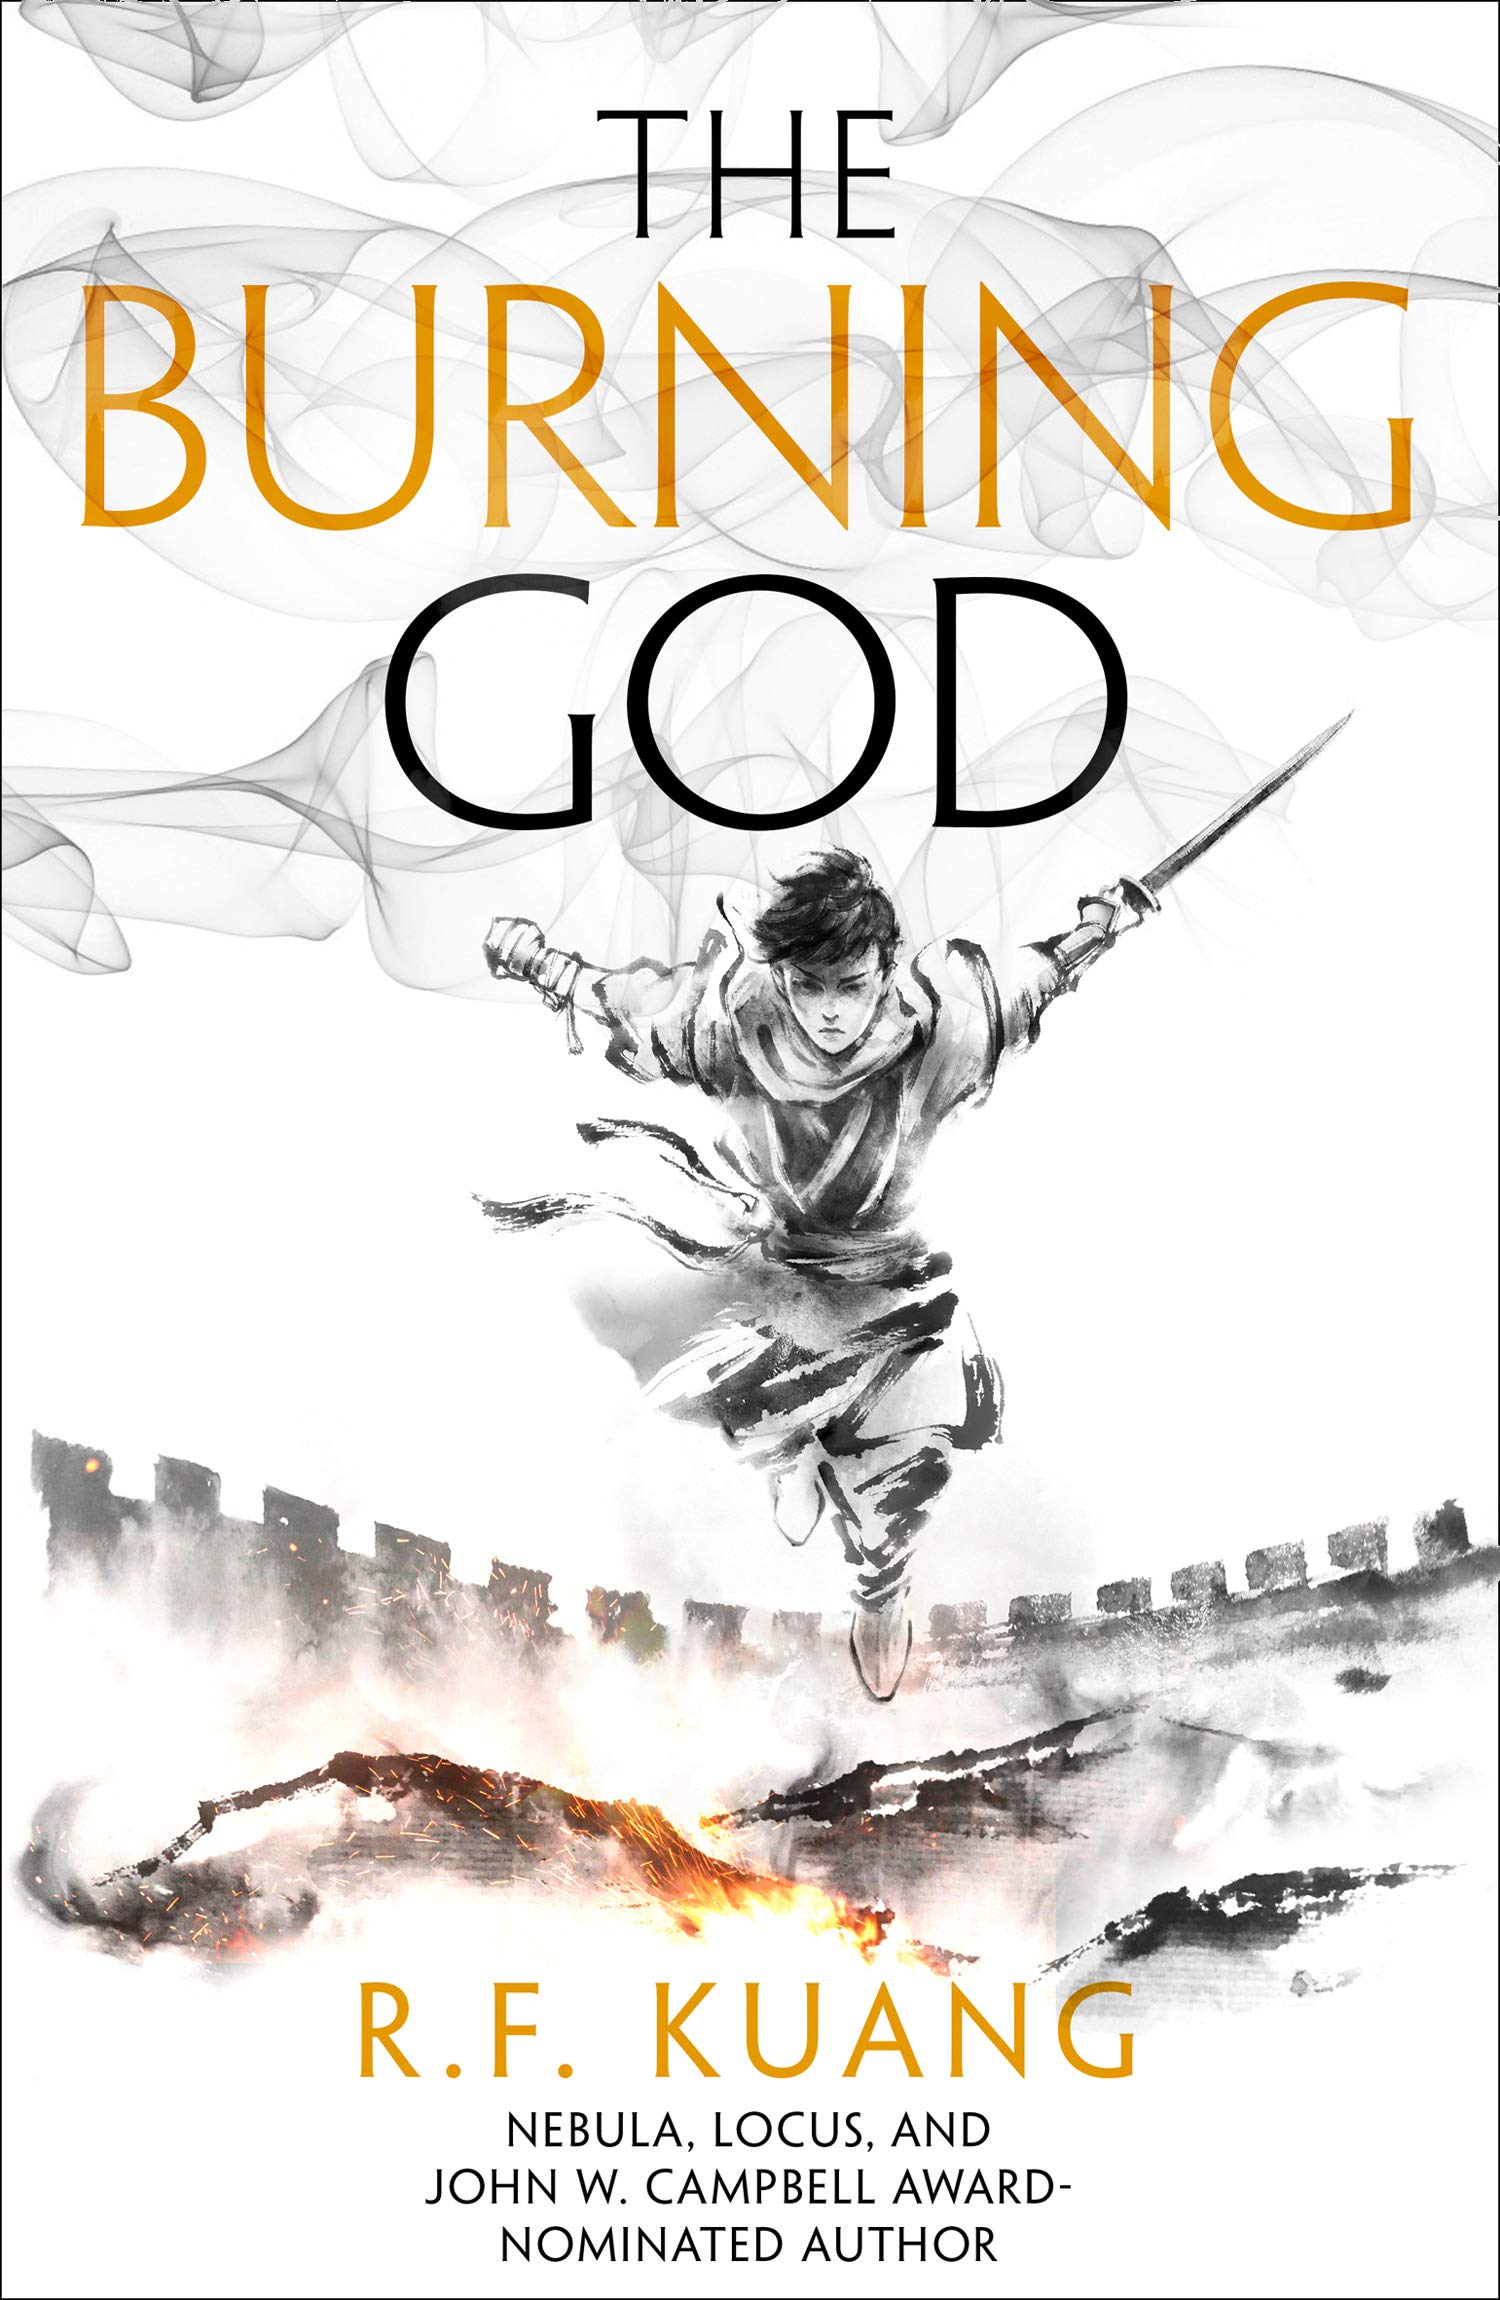 The Burning God (The Poppy War, Book 3): Amazon.co.uk: Kuang, R.F. ...